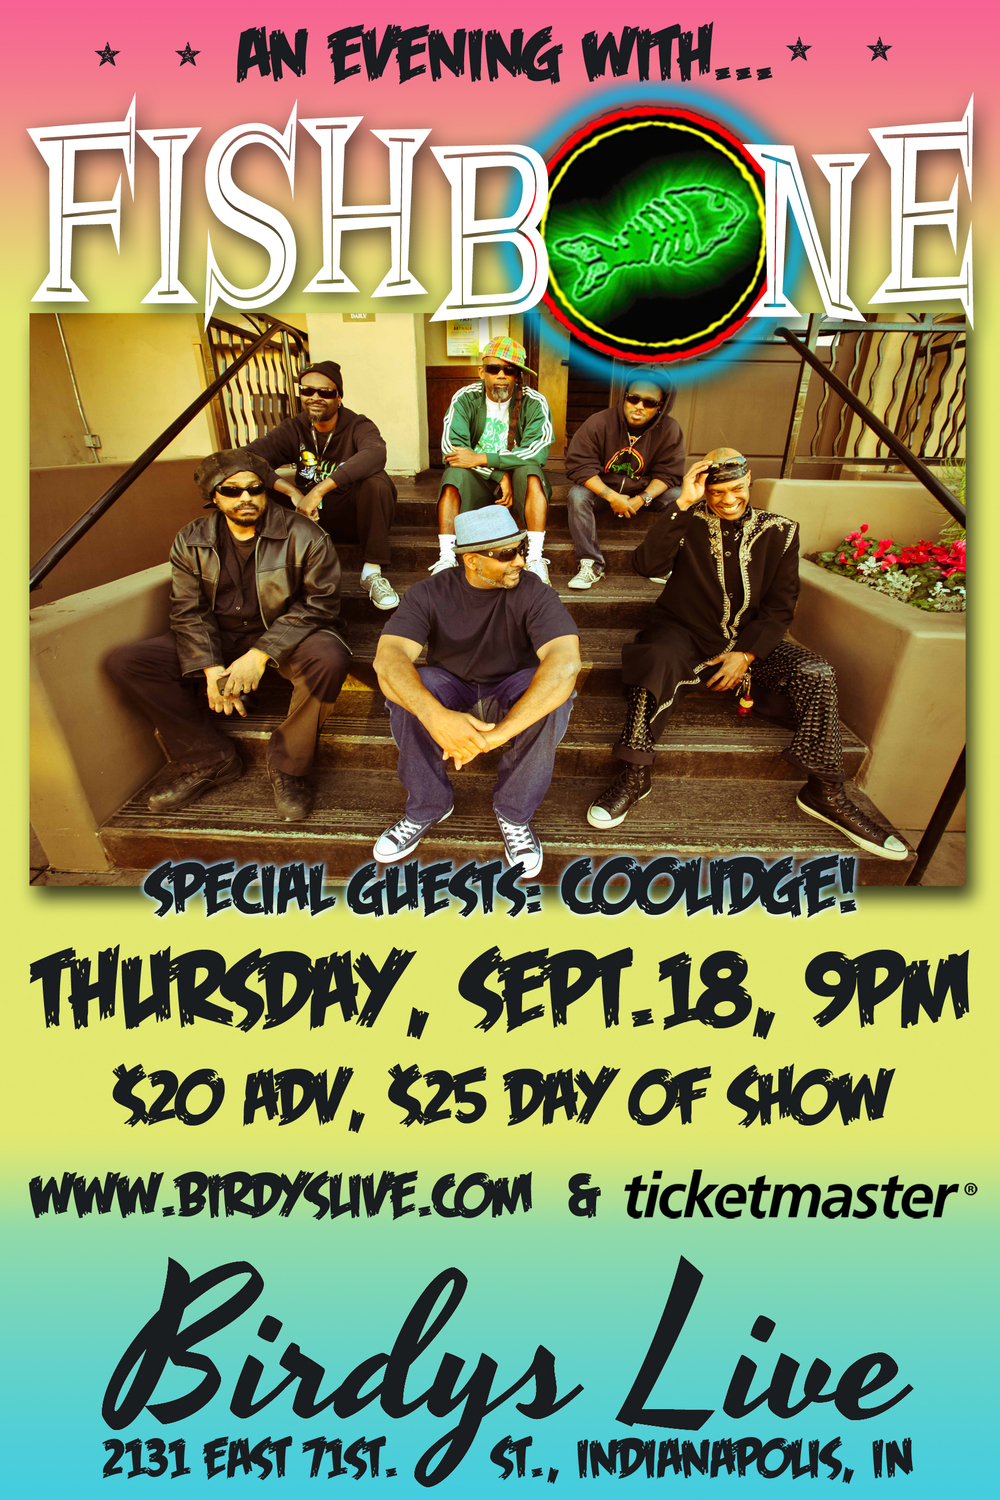 Celebrating 25+ groundbreaking years, FISHBONE has been trailblazing their way through the history of American Ska, Funk, Punk, Rock Fusion and (so-called) Black Rock since starting their professional career in Los Angeles' burgeoning, Alternative Rock music scene of the mid-1980s. Their sound has often been imitated, but never duplicated. They have toured worldwide with such bands as the Beastie Boys, Red Hot Chili Peppers, The Roots, Les Claypool/Primus, Fela Kuti, George Clinton, The Dead Kennedys and many more. Angelo Moore's ability to combine thought-provoking, humorous social commentary with FISHBONE's frenzied, up-tempo music and frantic, euphorically entertaining stage show has cultivated their undisputed reputation as one of the best live acts in music history.